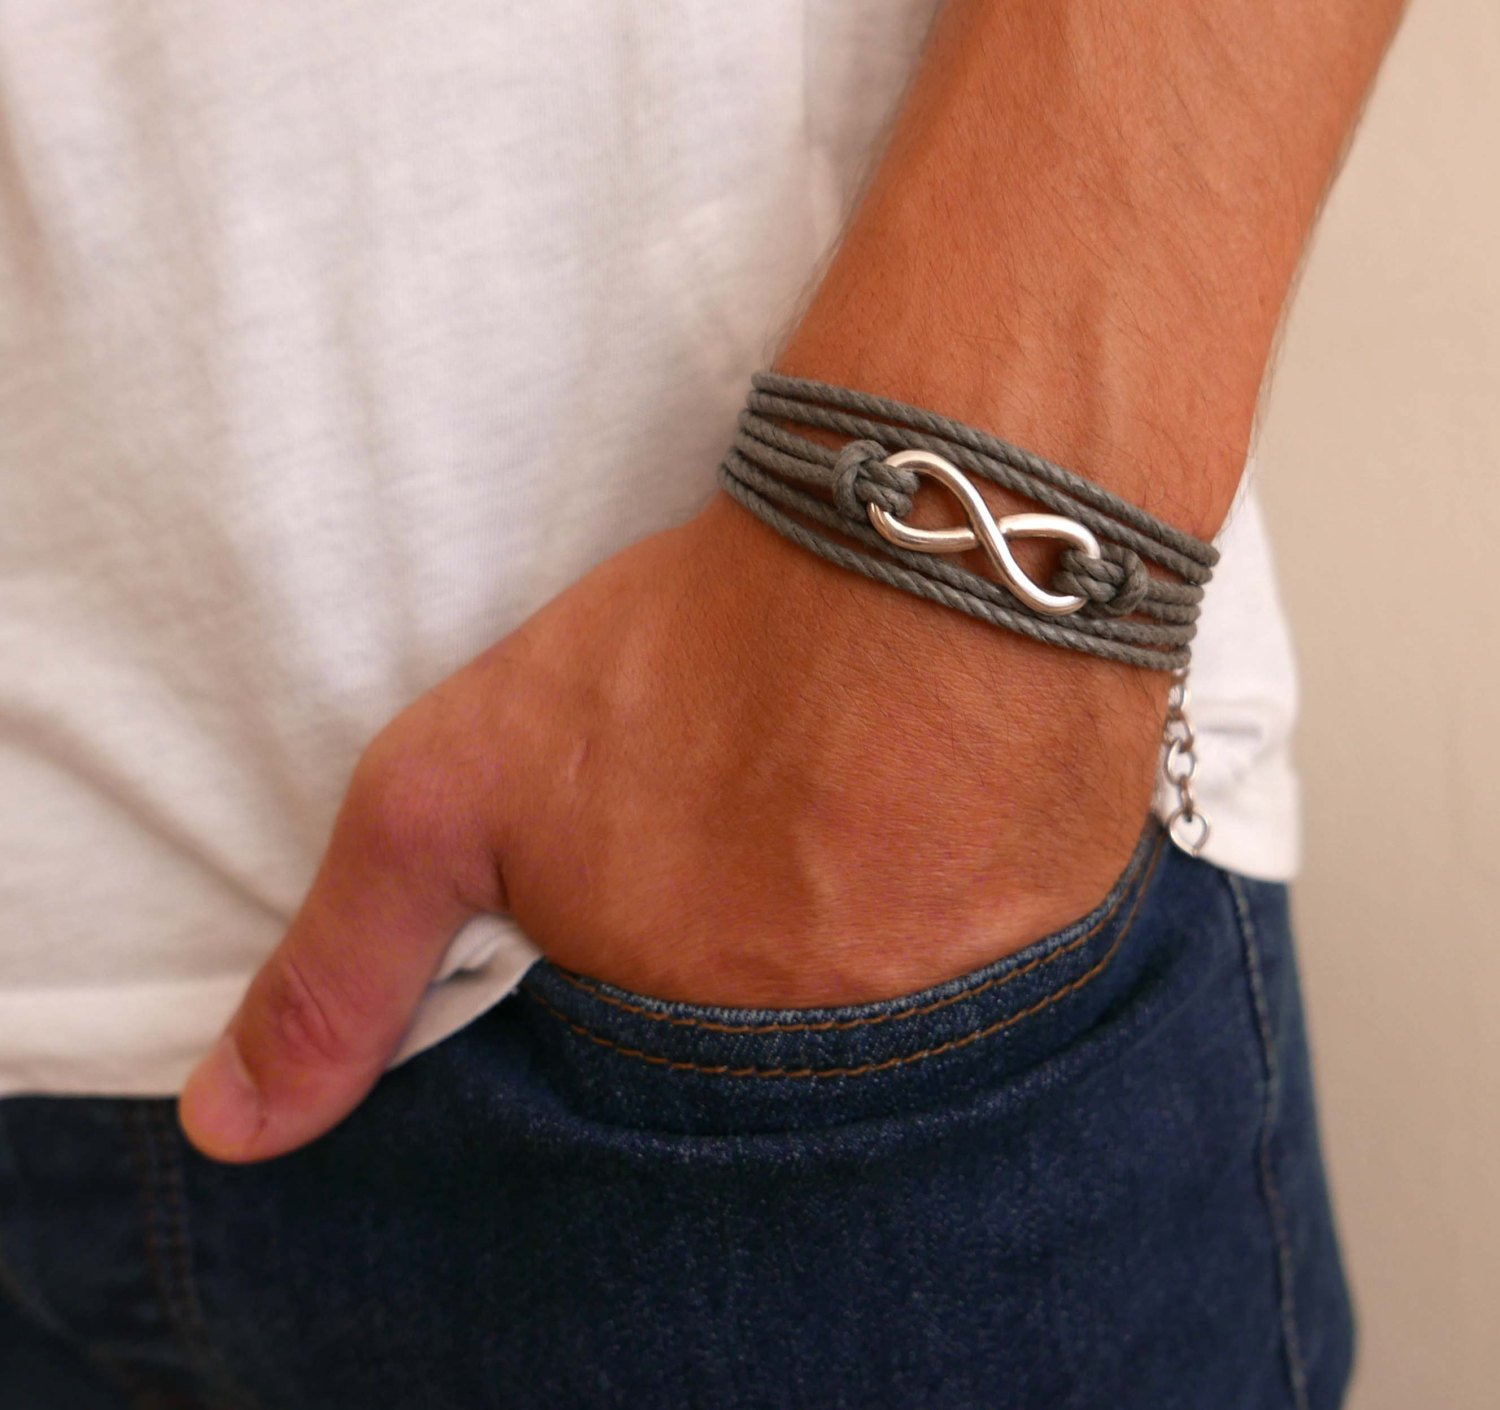 Men's Bracelet - Men's Infinity Bracelet - Men's Vegan Bracelet - Men's Jewelry - Jewelry For Men - Bracelets For men - Male Jewelry - Male Bracelet